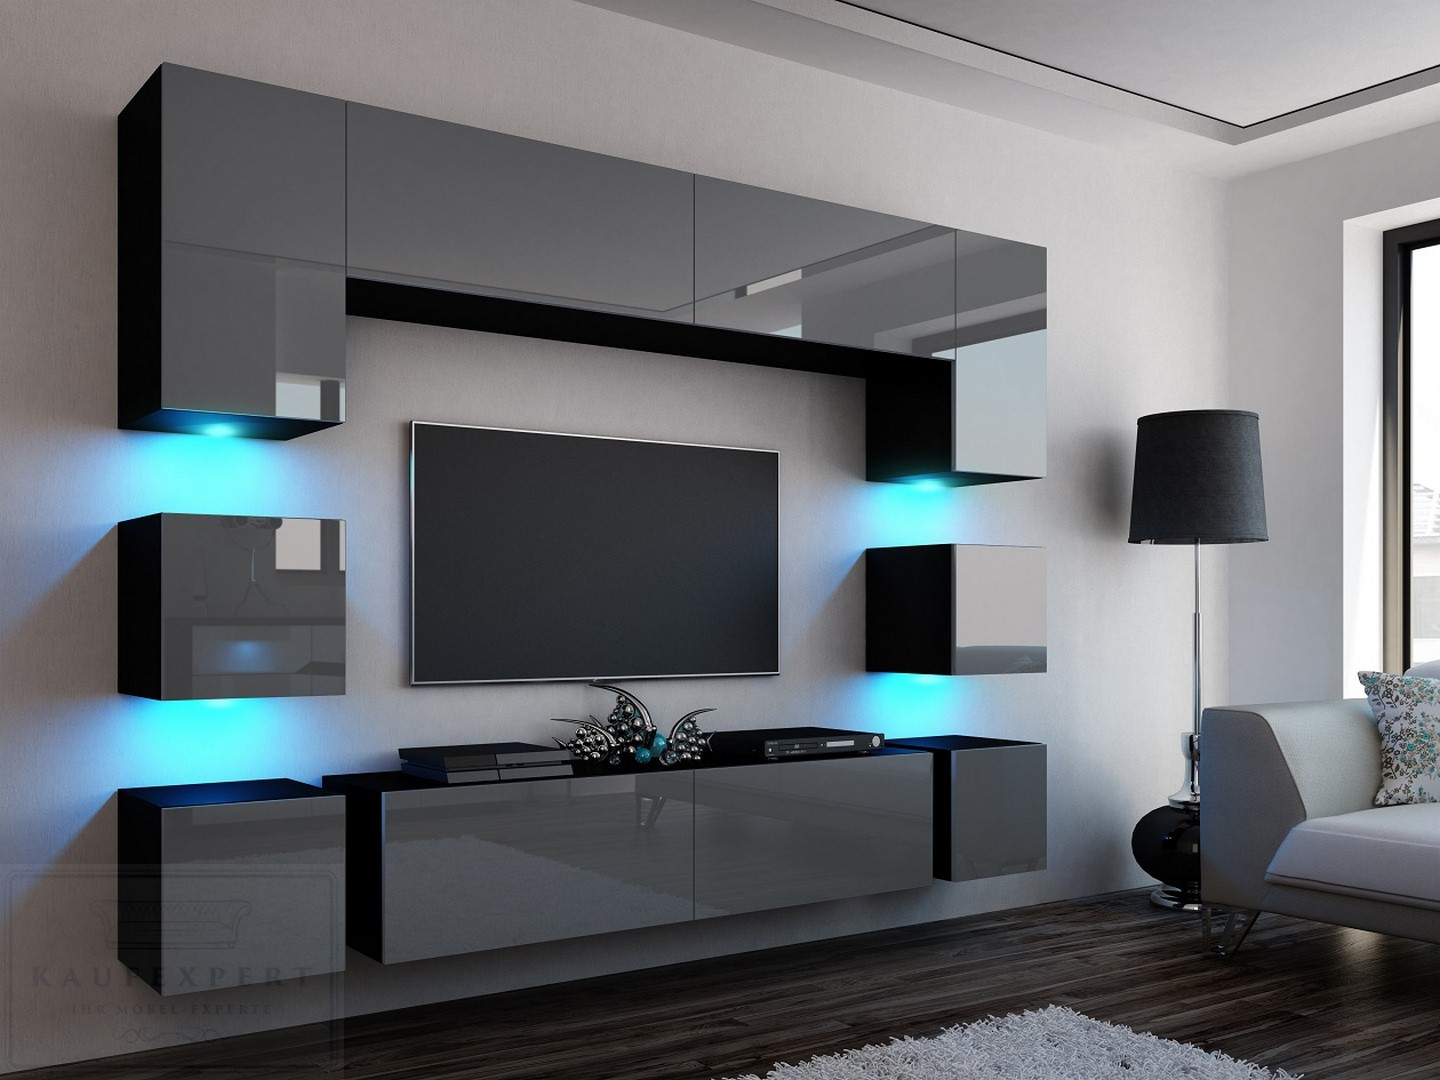 neuheit wohnwand quadro 228 wei hochglanz led beleuchtung mirage orion project ebay. Black Bedroom Furniture Sets. Home Design Ideas